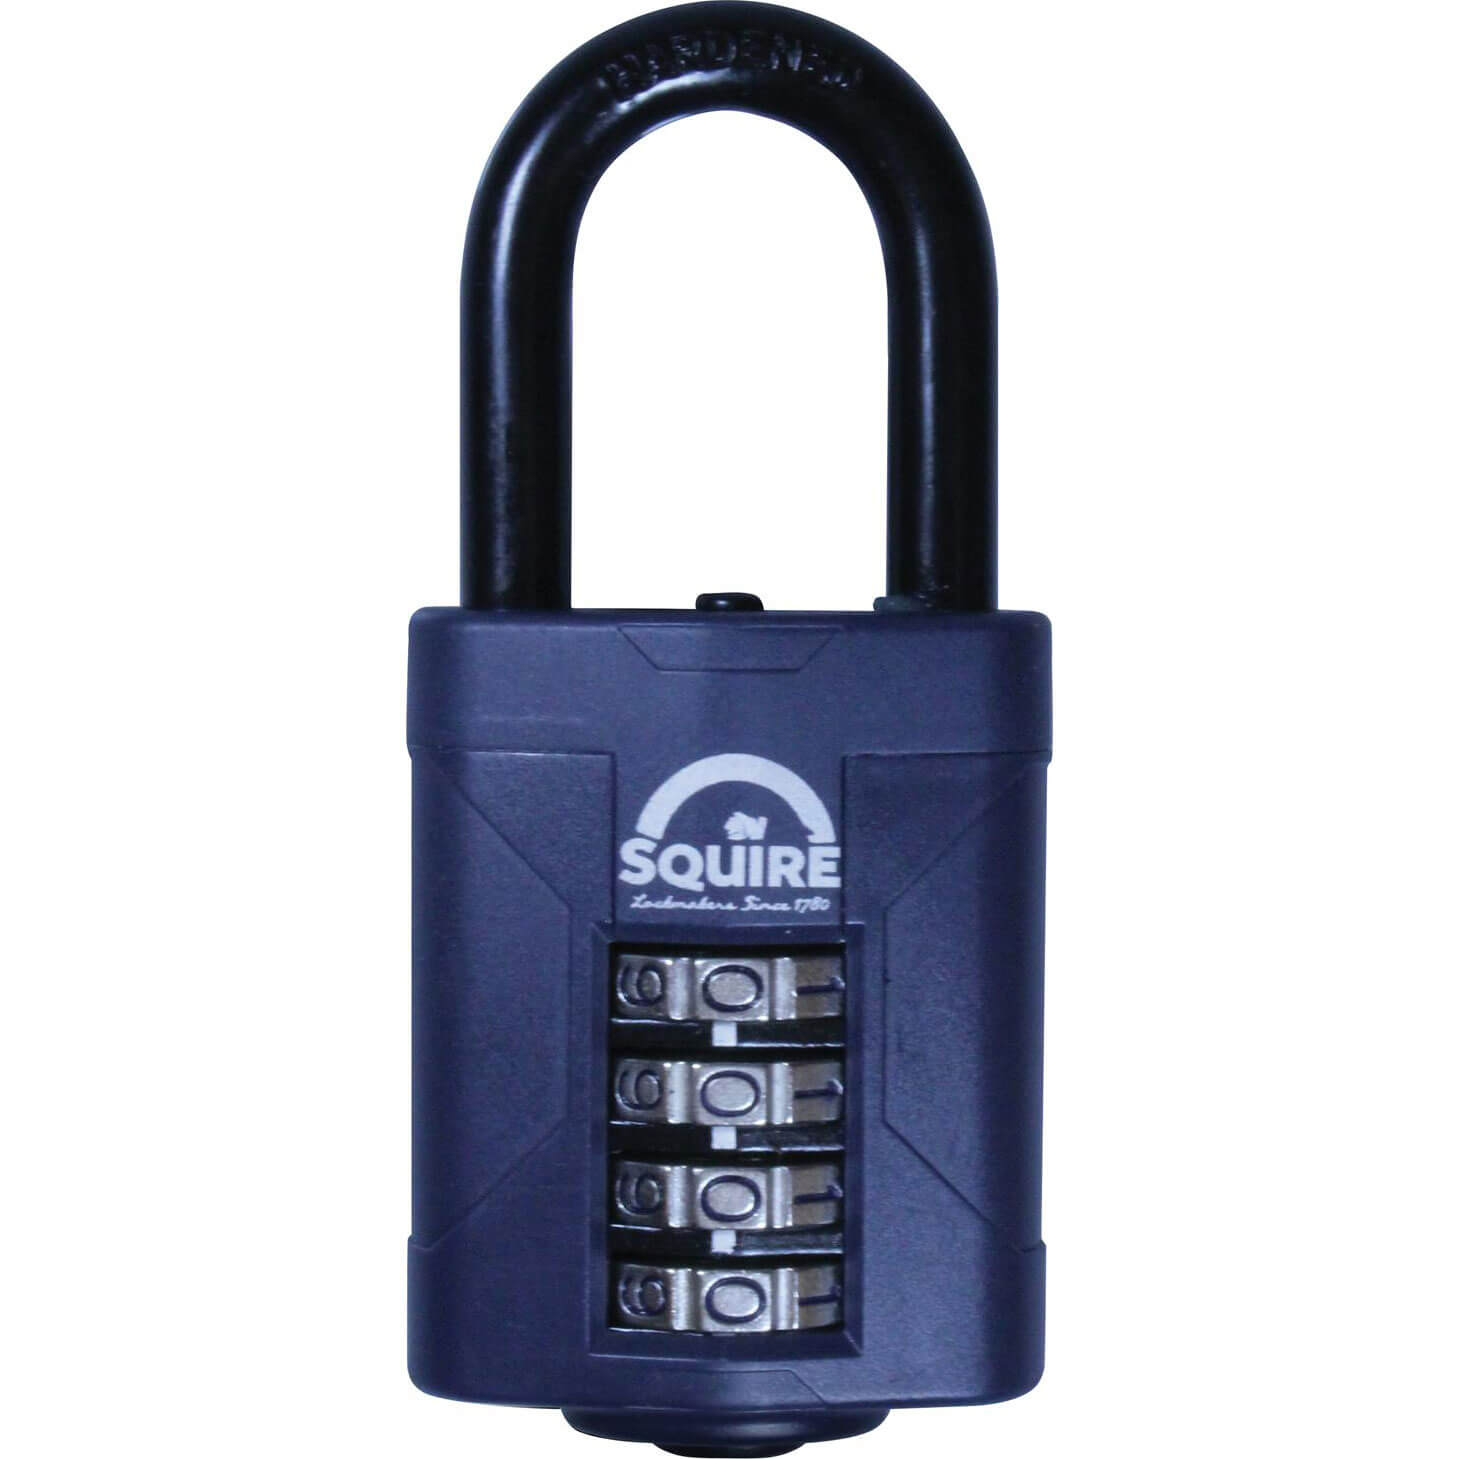 Image of Henry Squire Push Button Combination Padlock 50mm Long